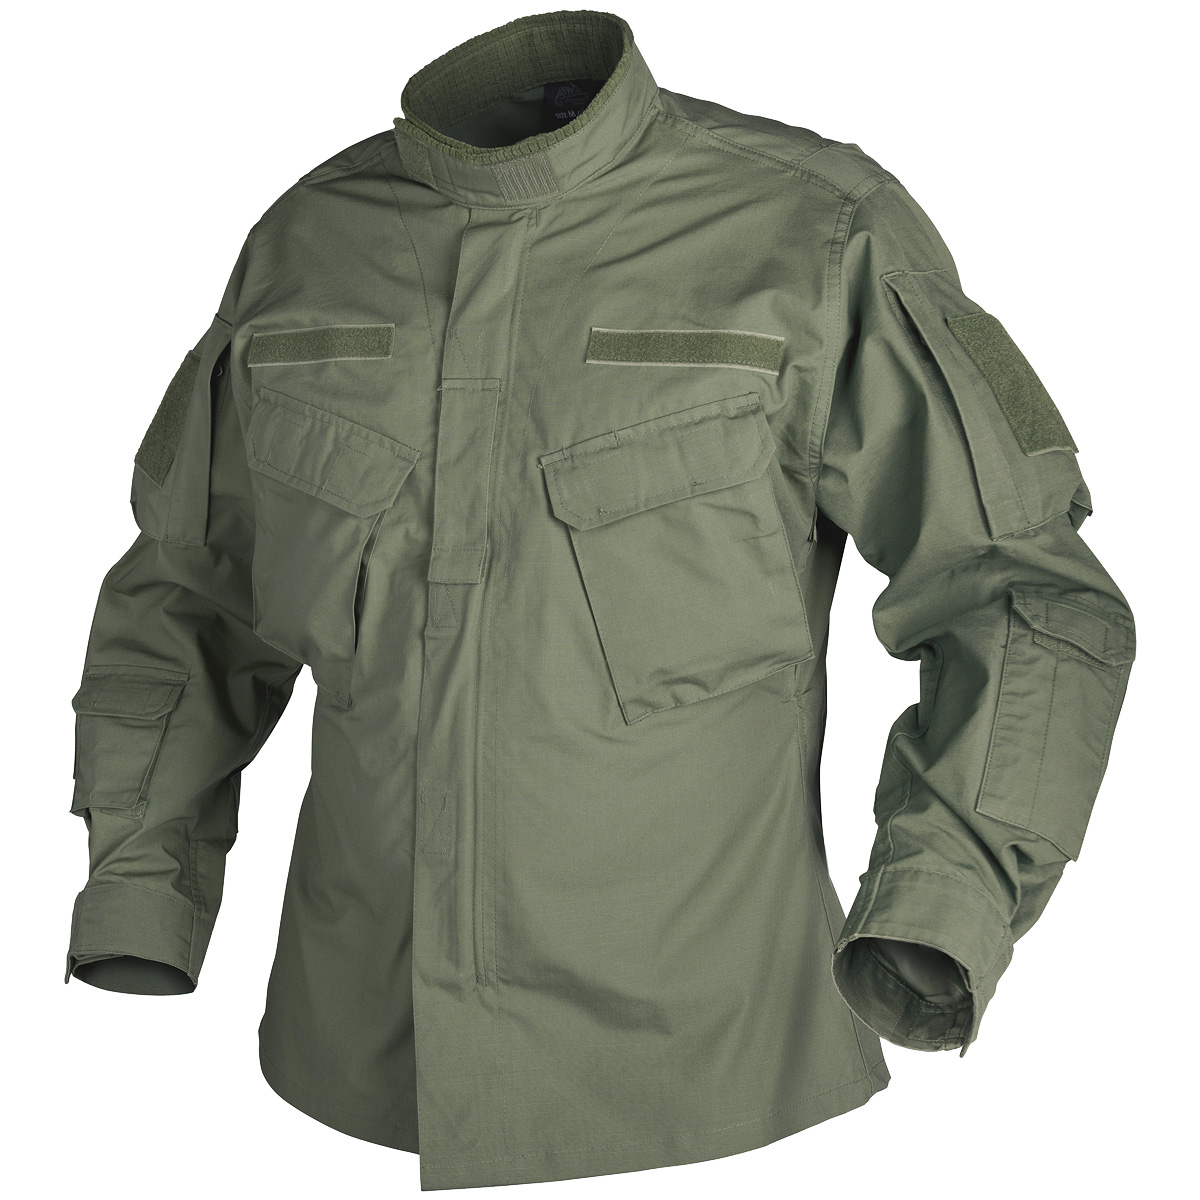 Shop for green army jacket womens online at Target. Free shipping on purchases over $35 and save 5% every day with your Target REDcard.